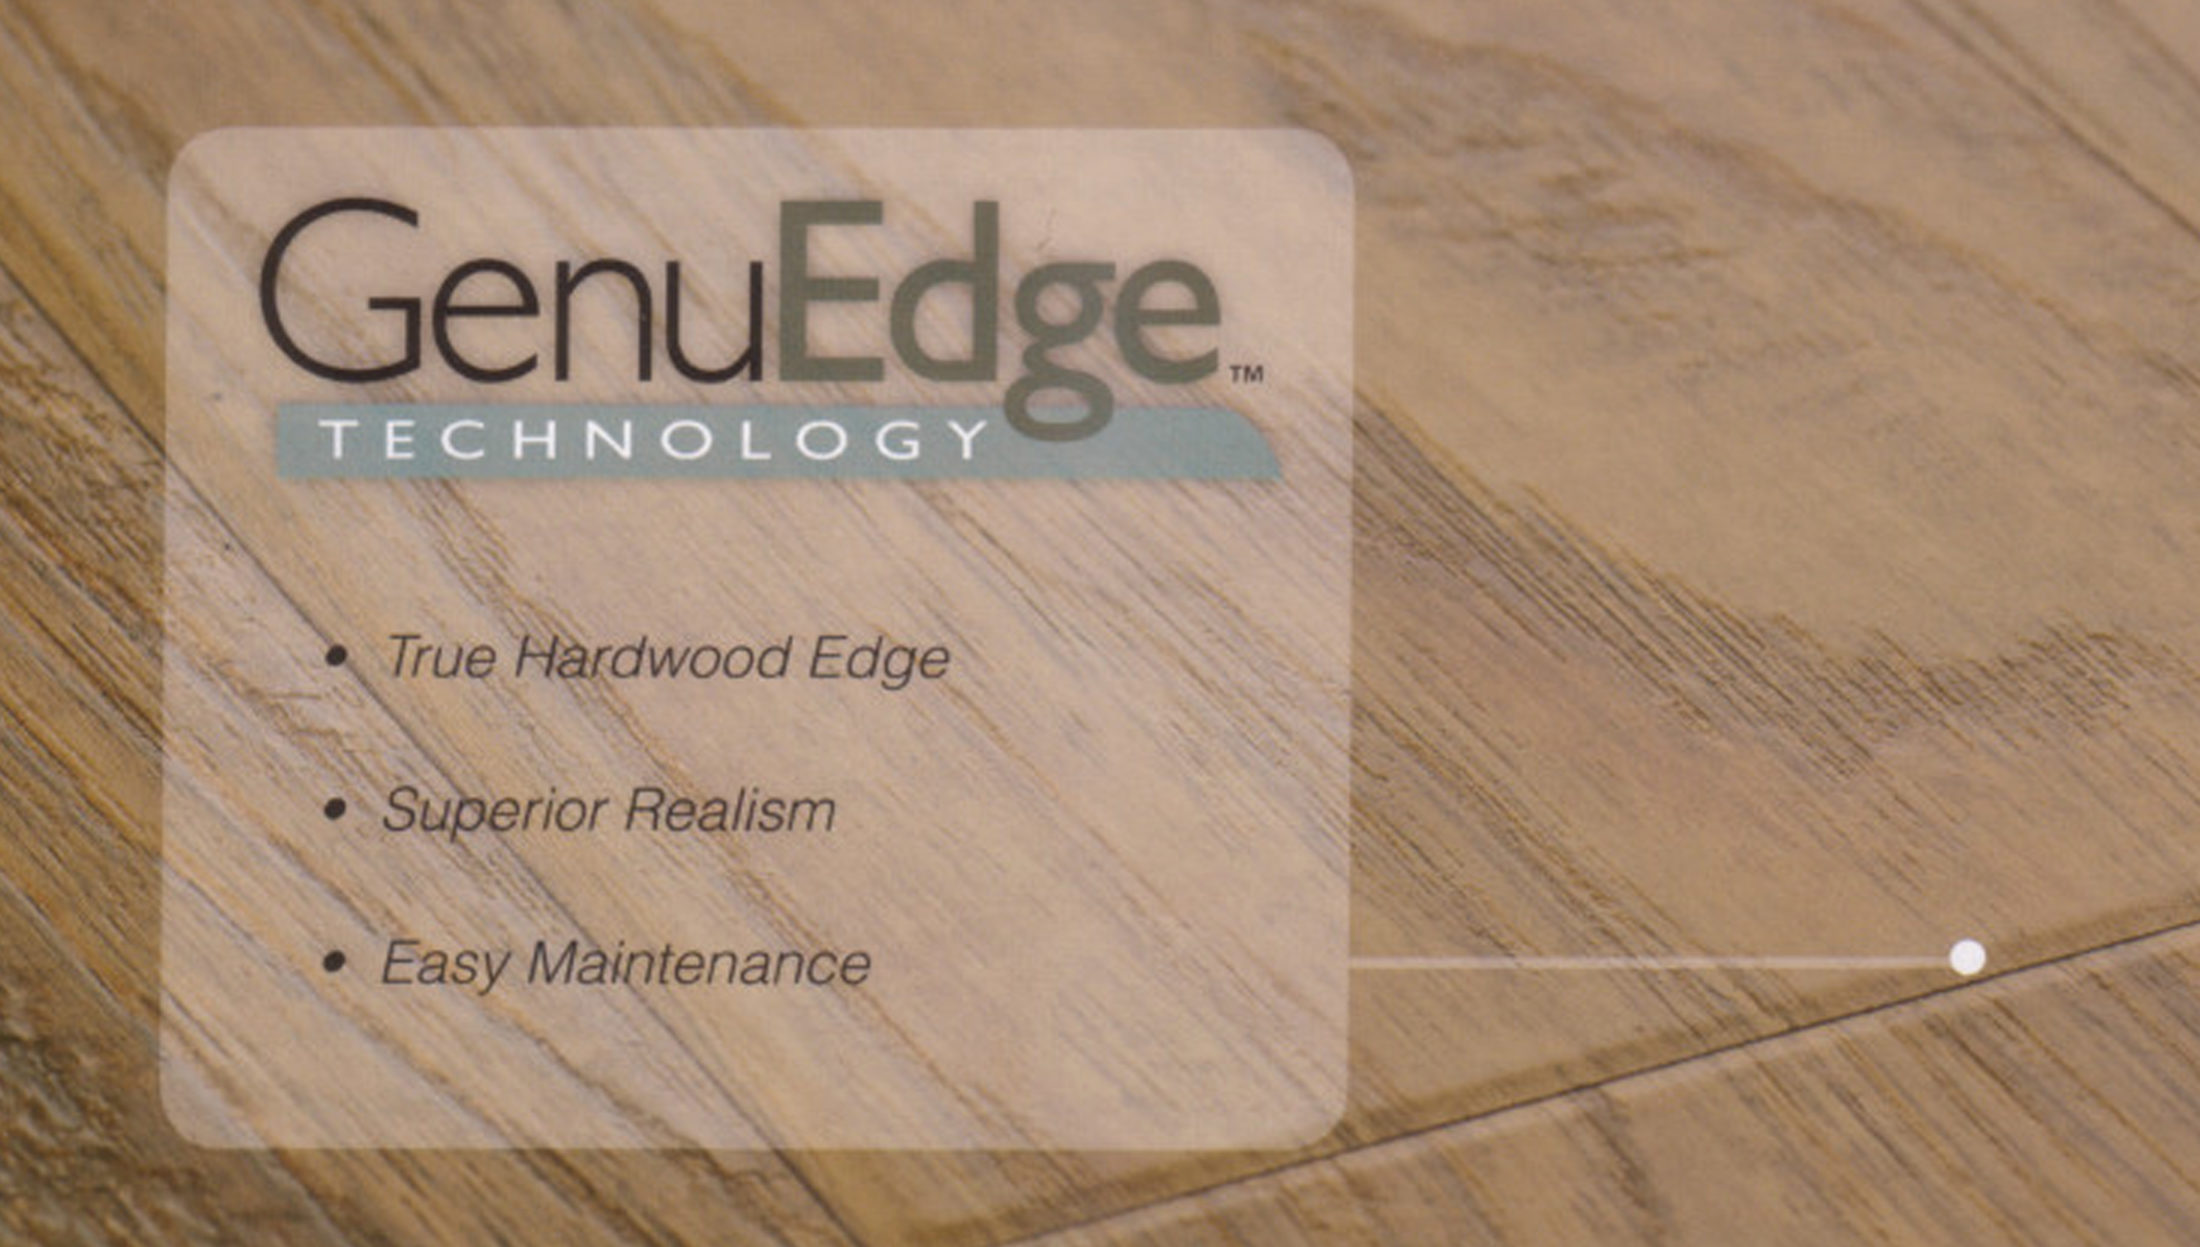 GenuEdge Graphic